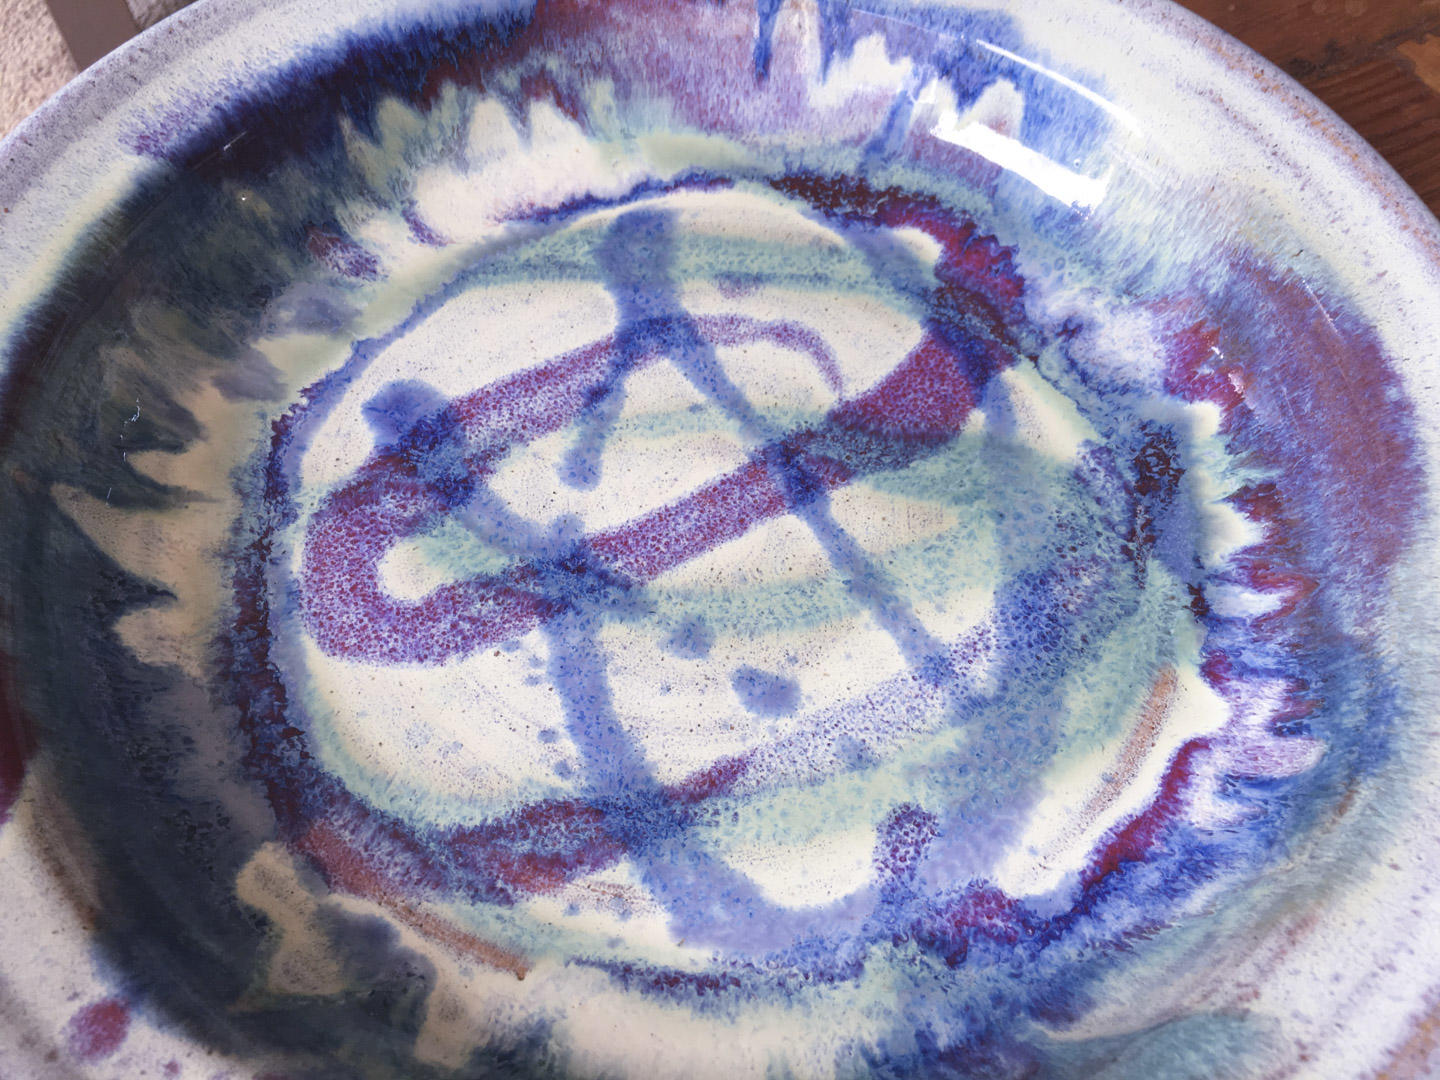 Close up of swirly purple and blue pattern on a quiche dish.